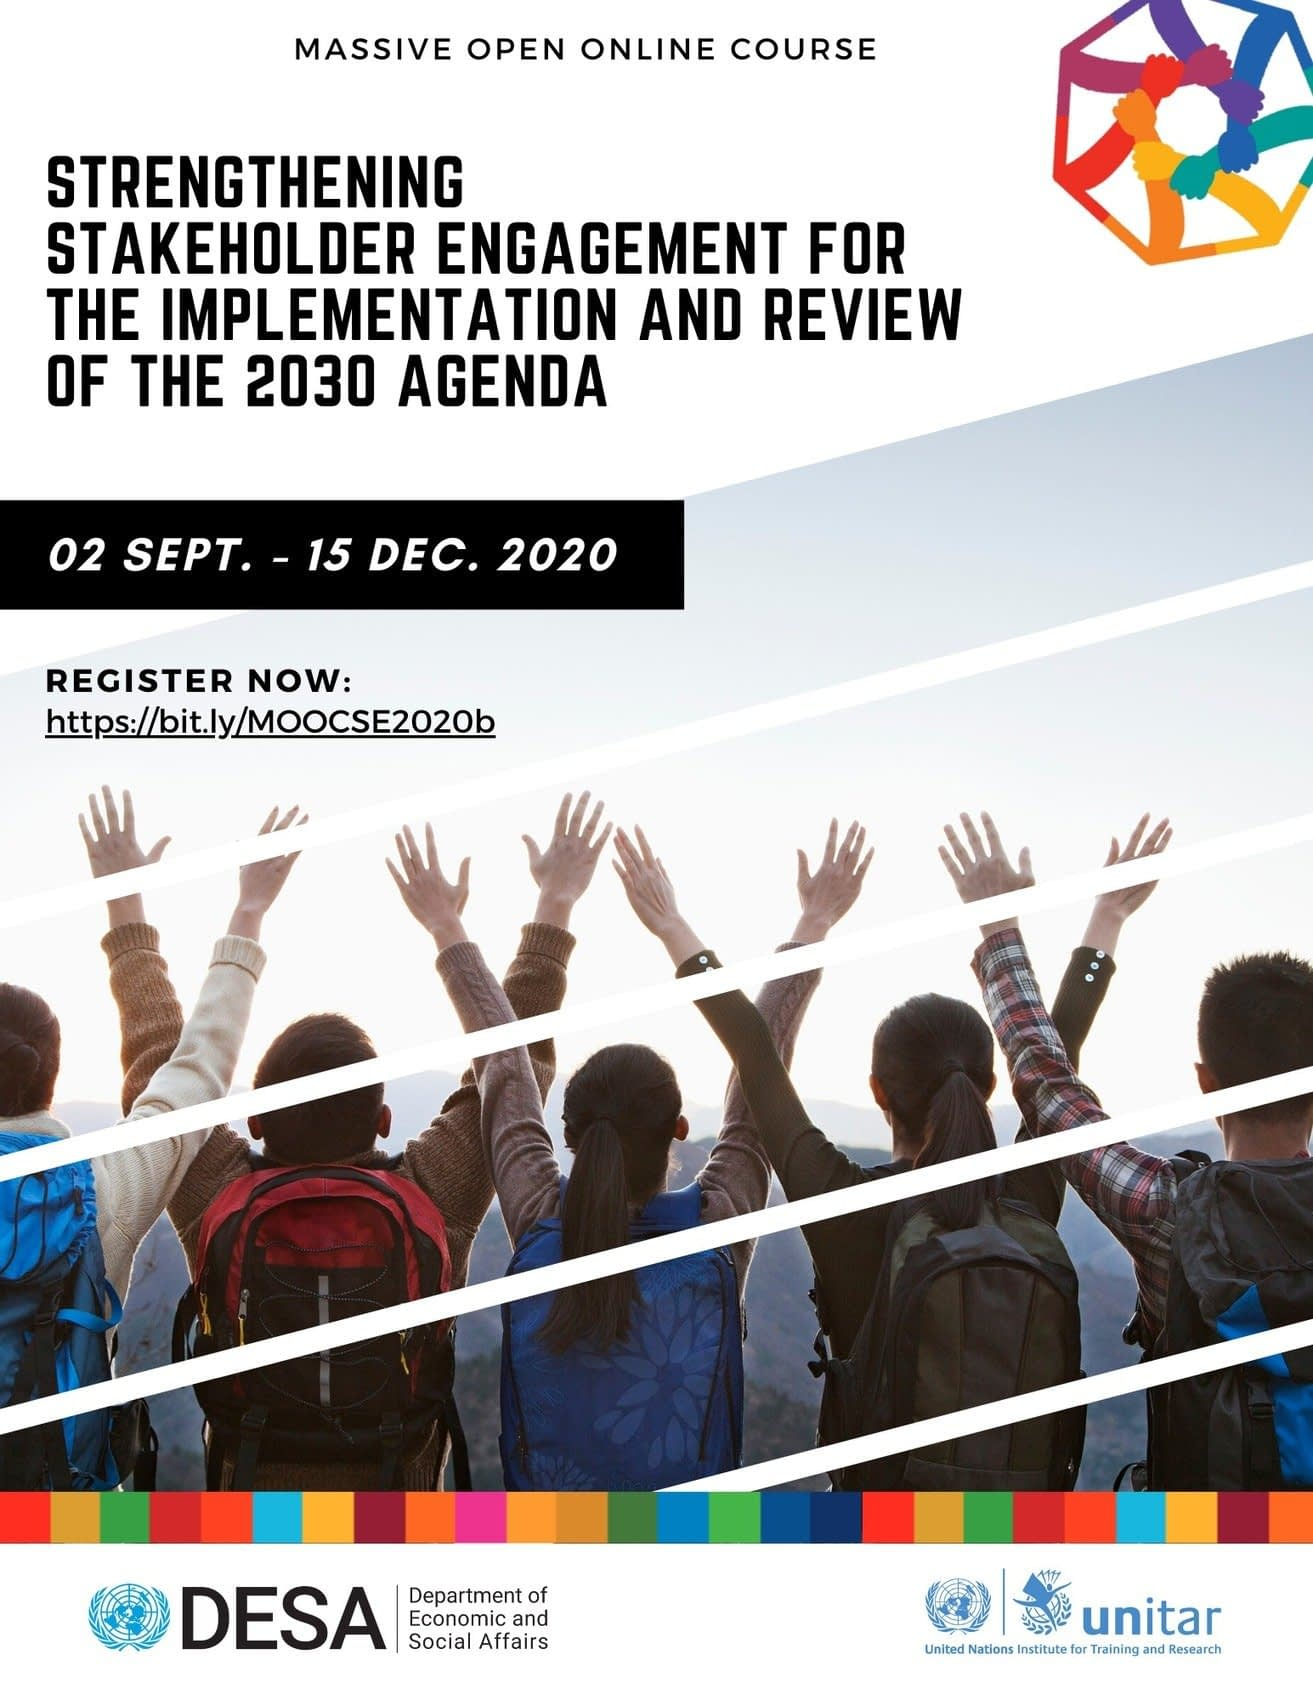 , Massive Open Online Course (MOOC) – Strengthening stakeholder engagement for the implementation and review of the 2030 Agenda .:. Sustainable Development Knowledge Platform, TheCircularEconomy.com